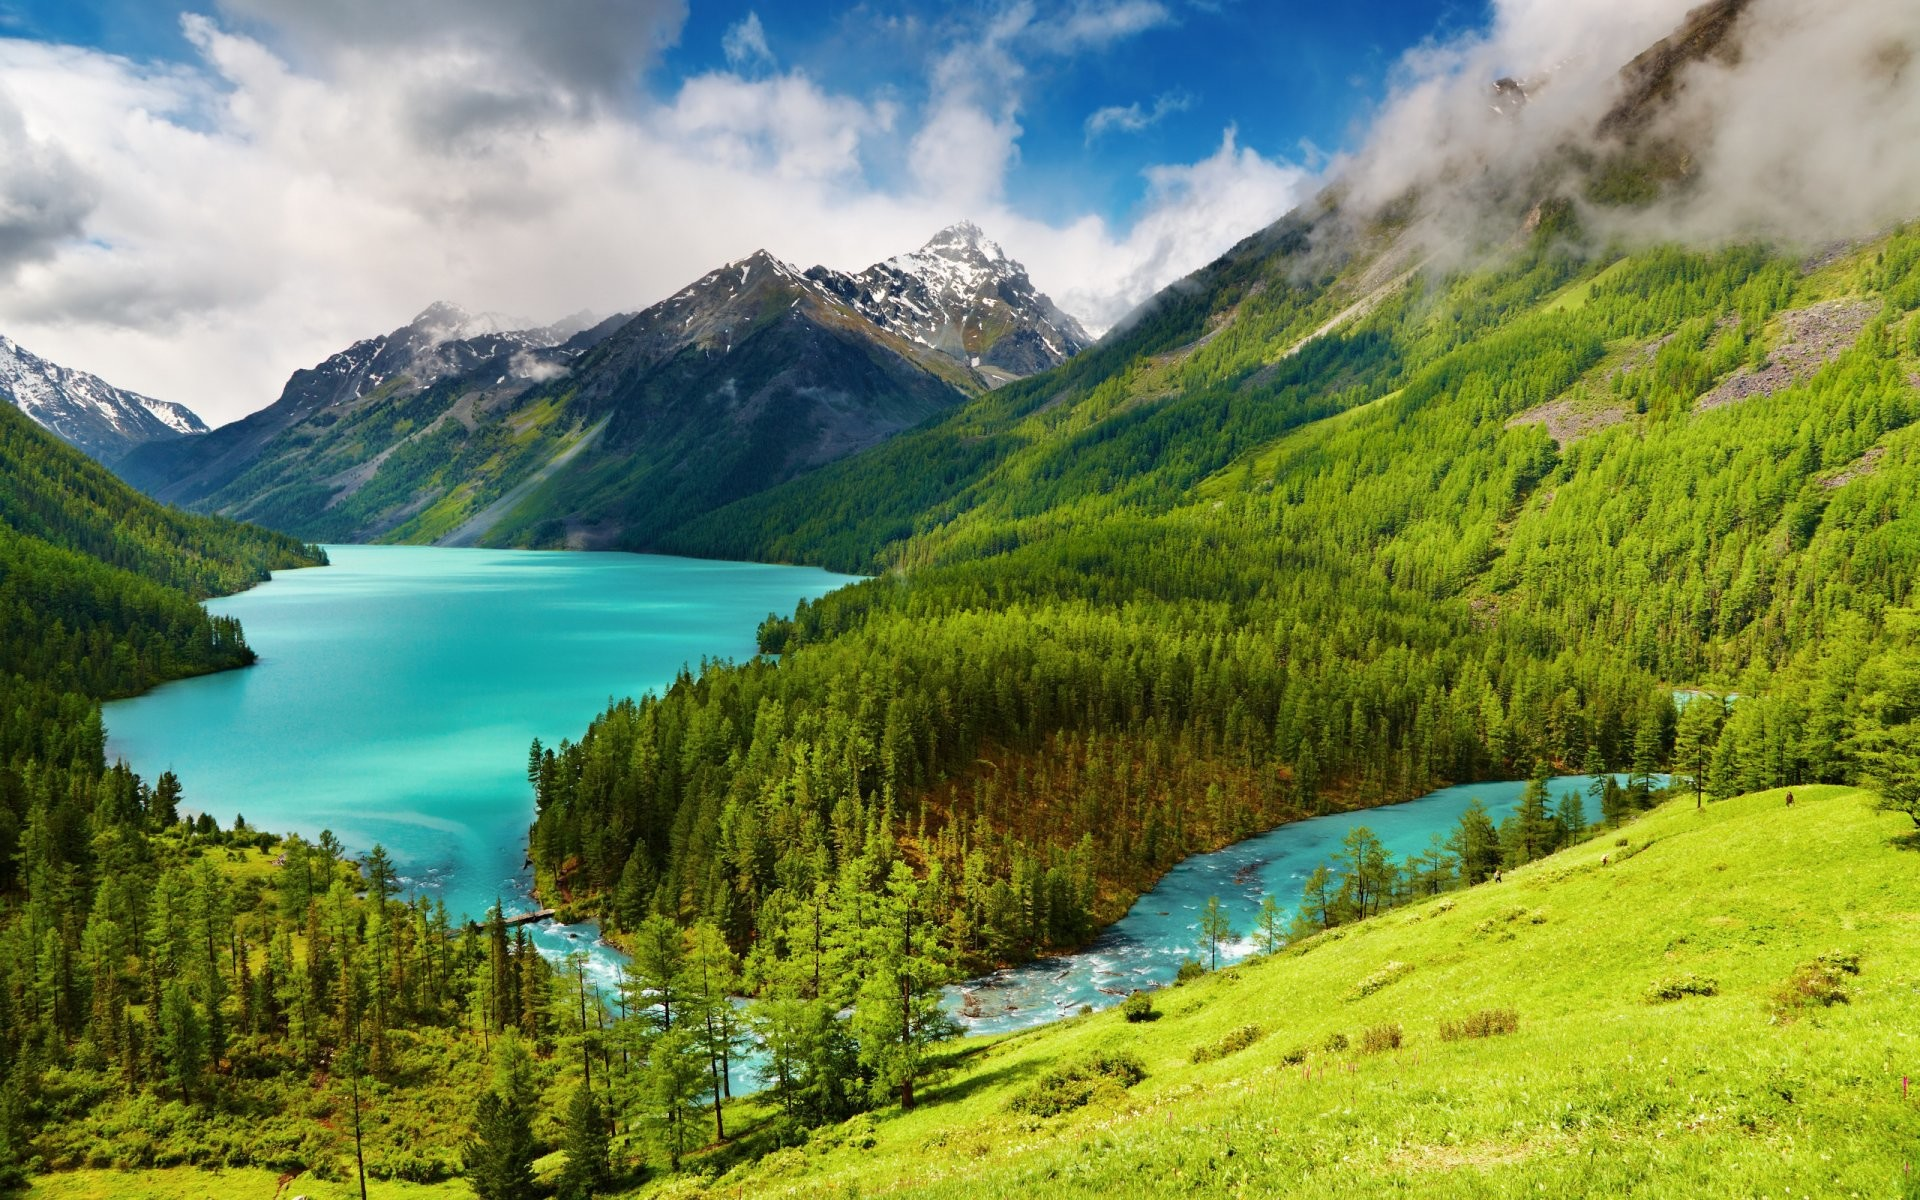 HD Nature Wallpapers